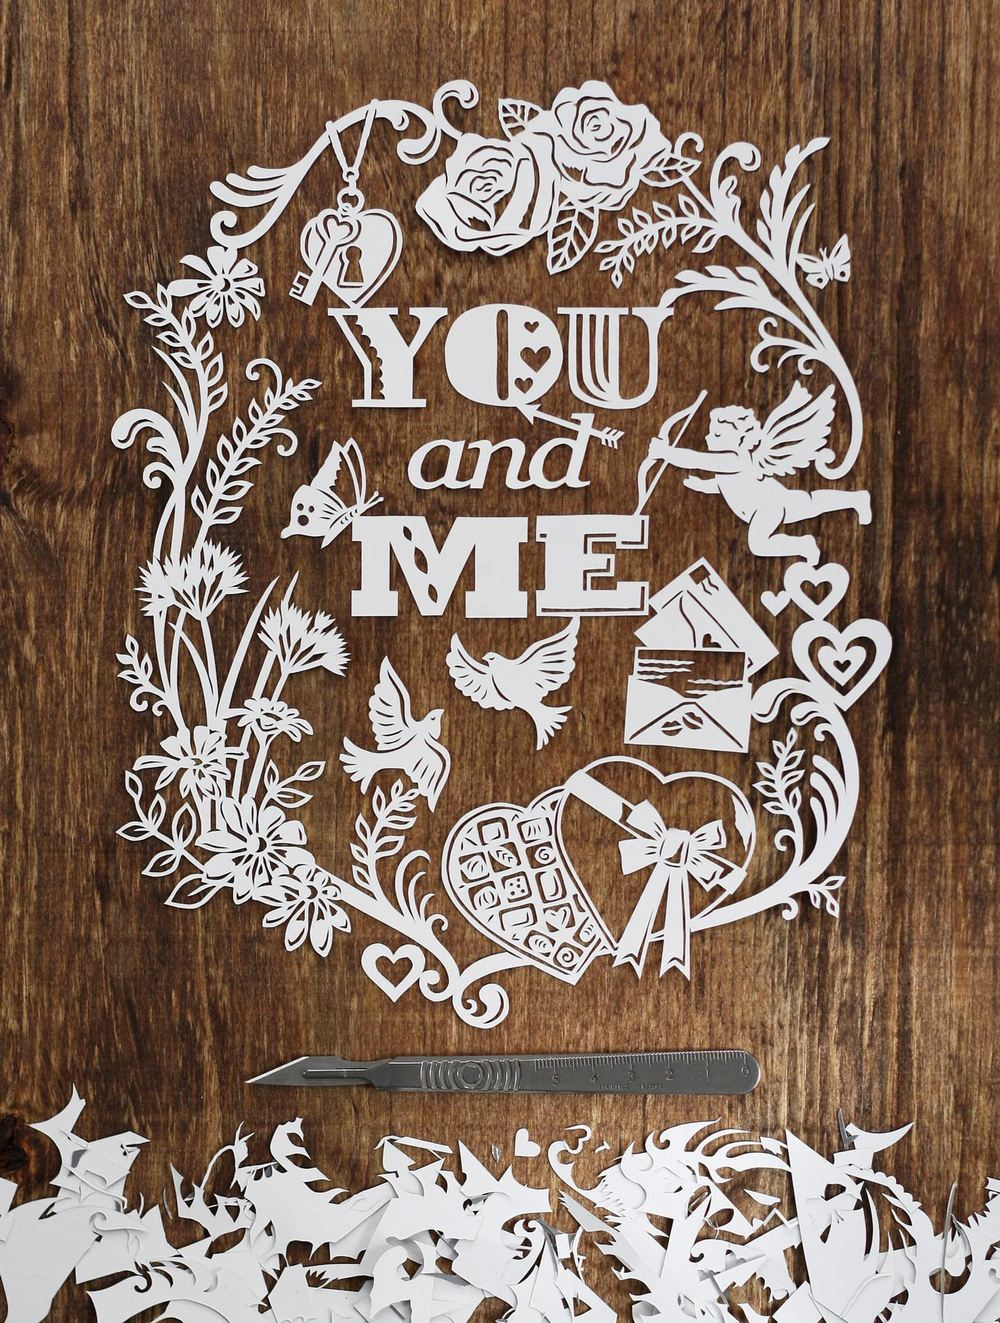 you and me romatic love papercut illustration with cupid